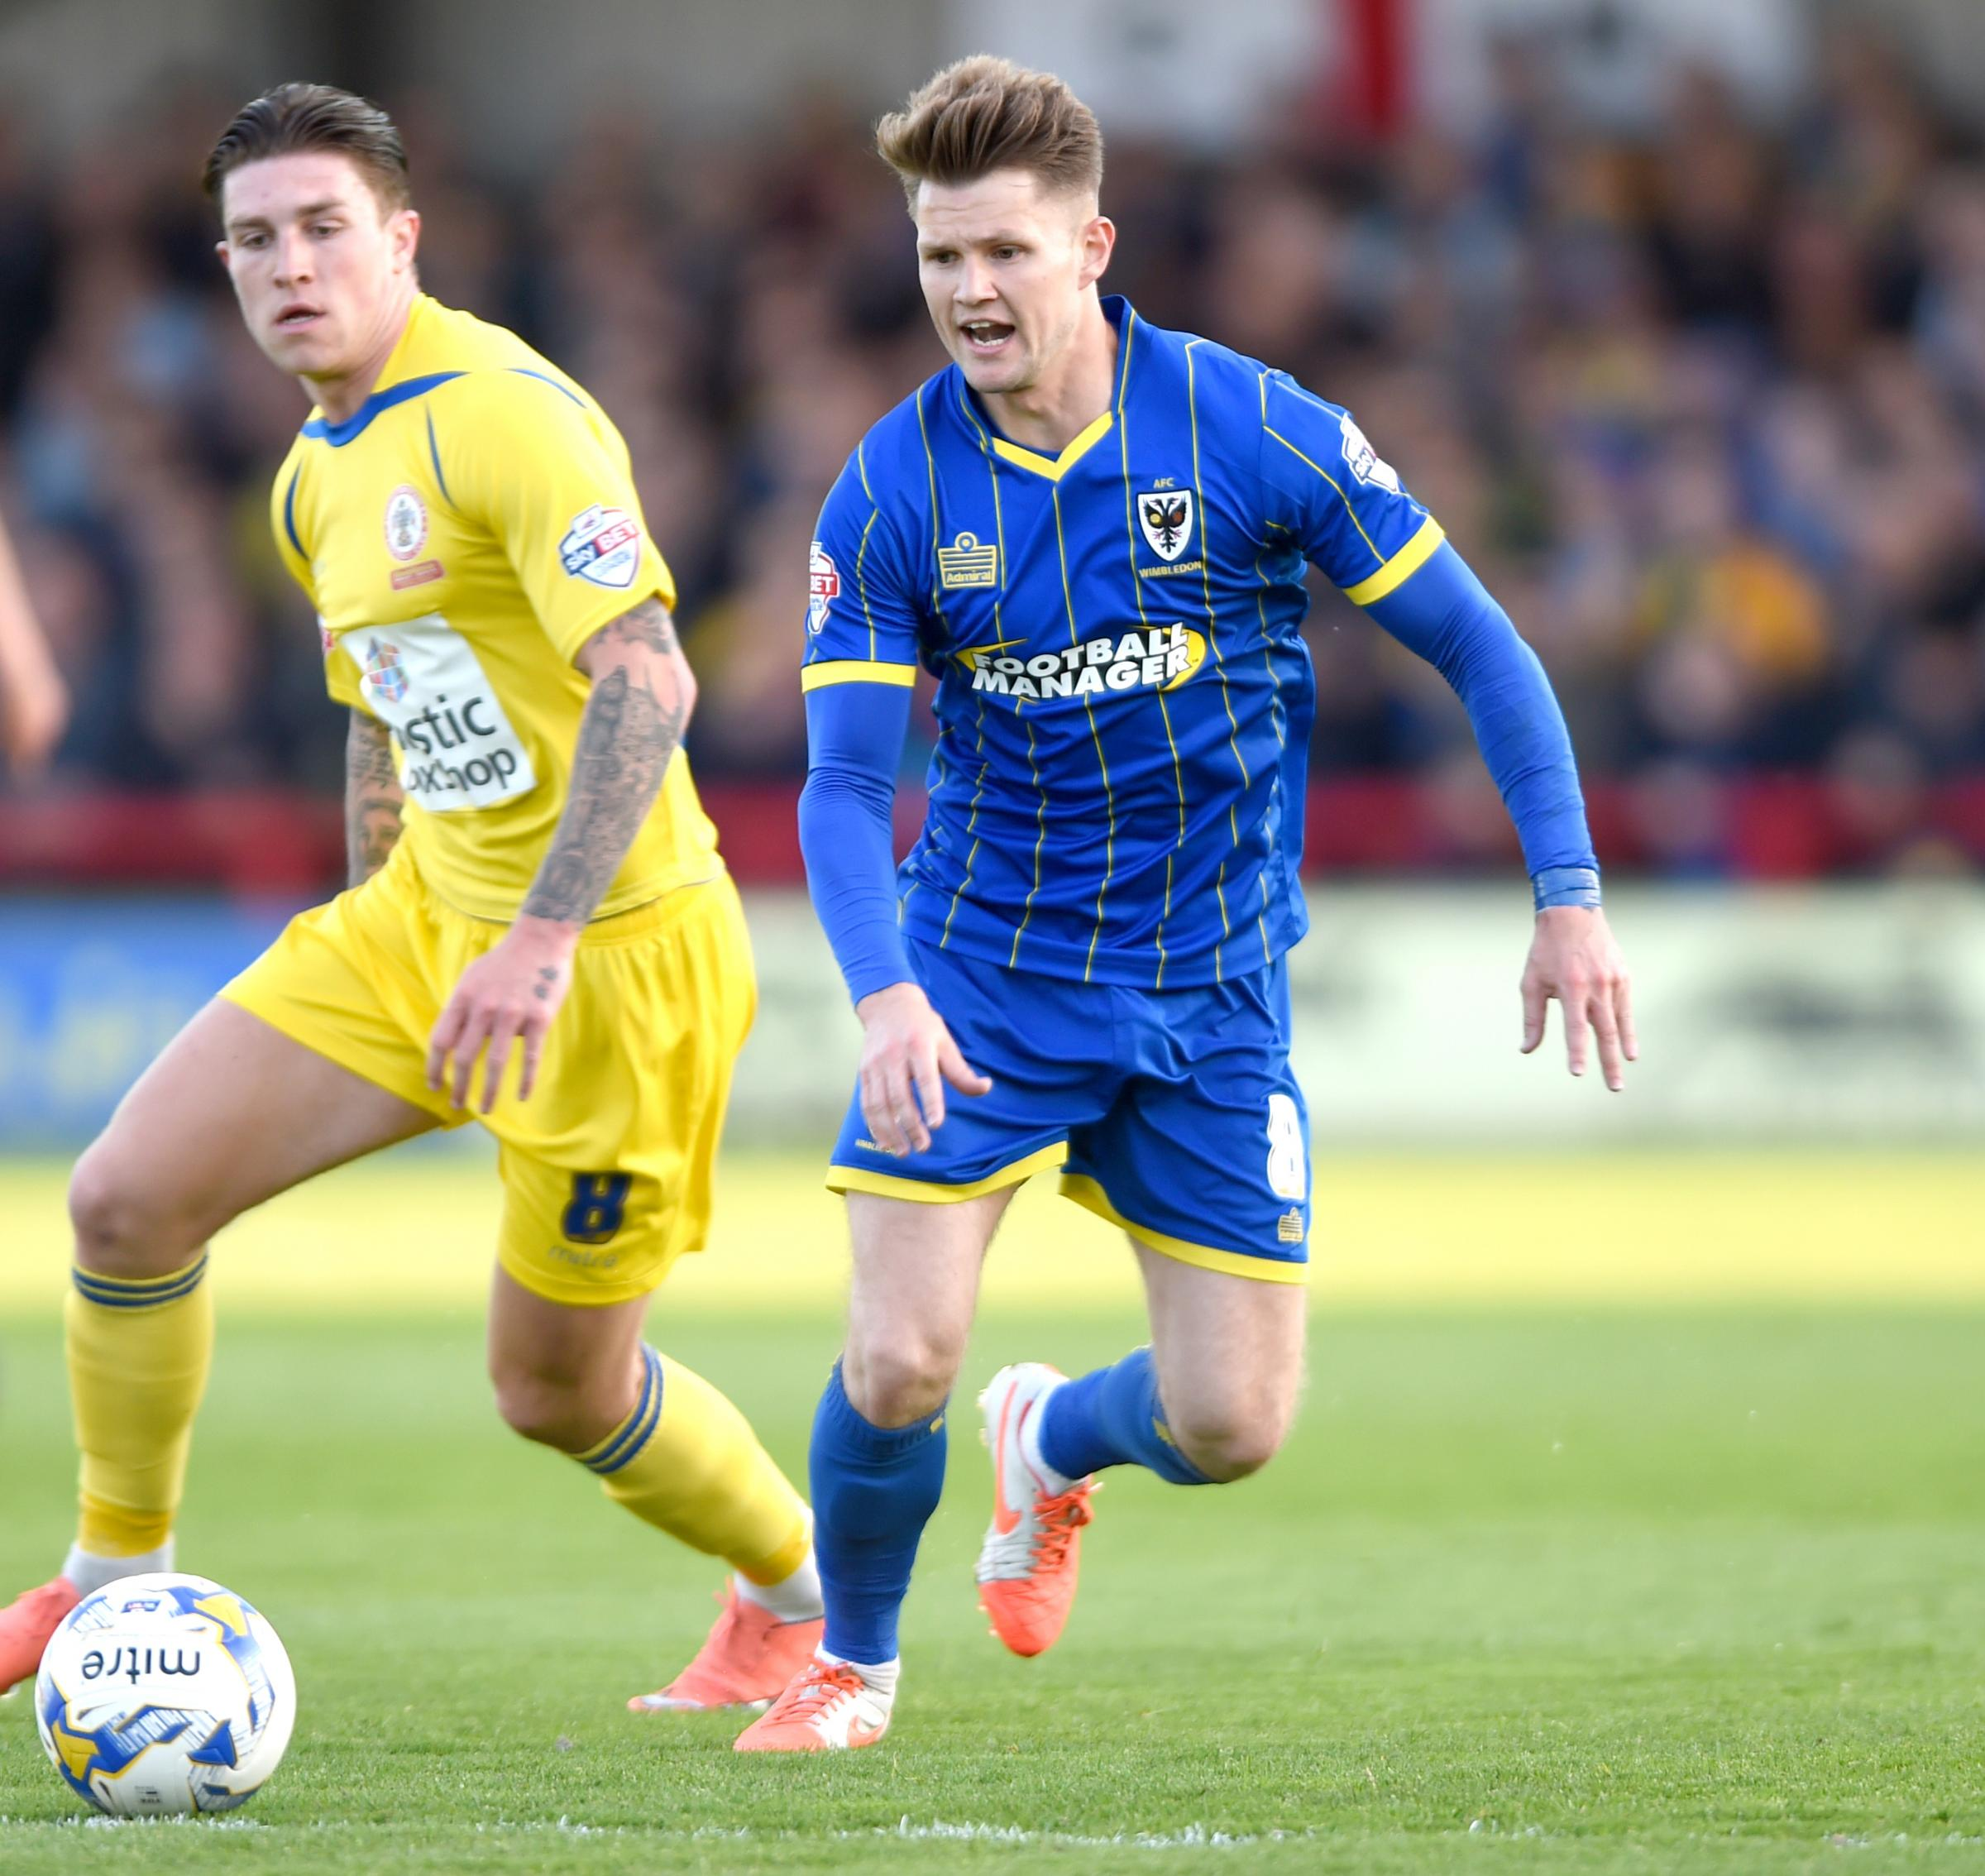 Jake Reeves scored AFC Wimbledon's first goal against Milton Keynes